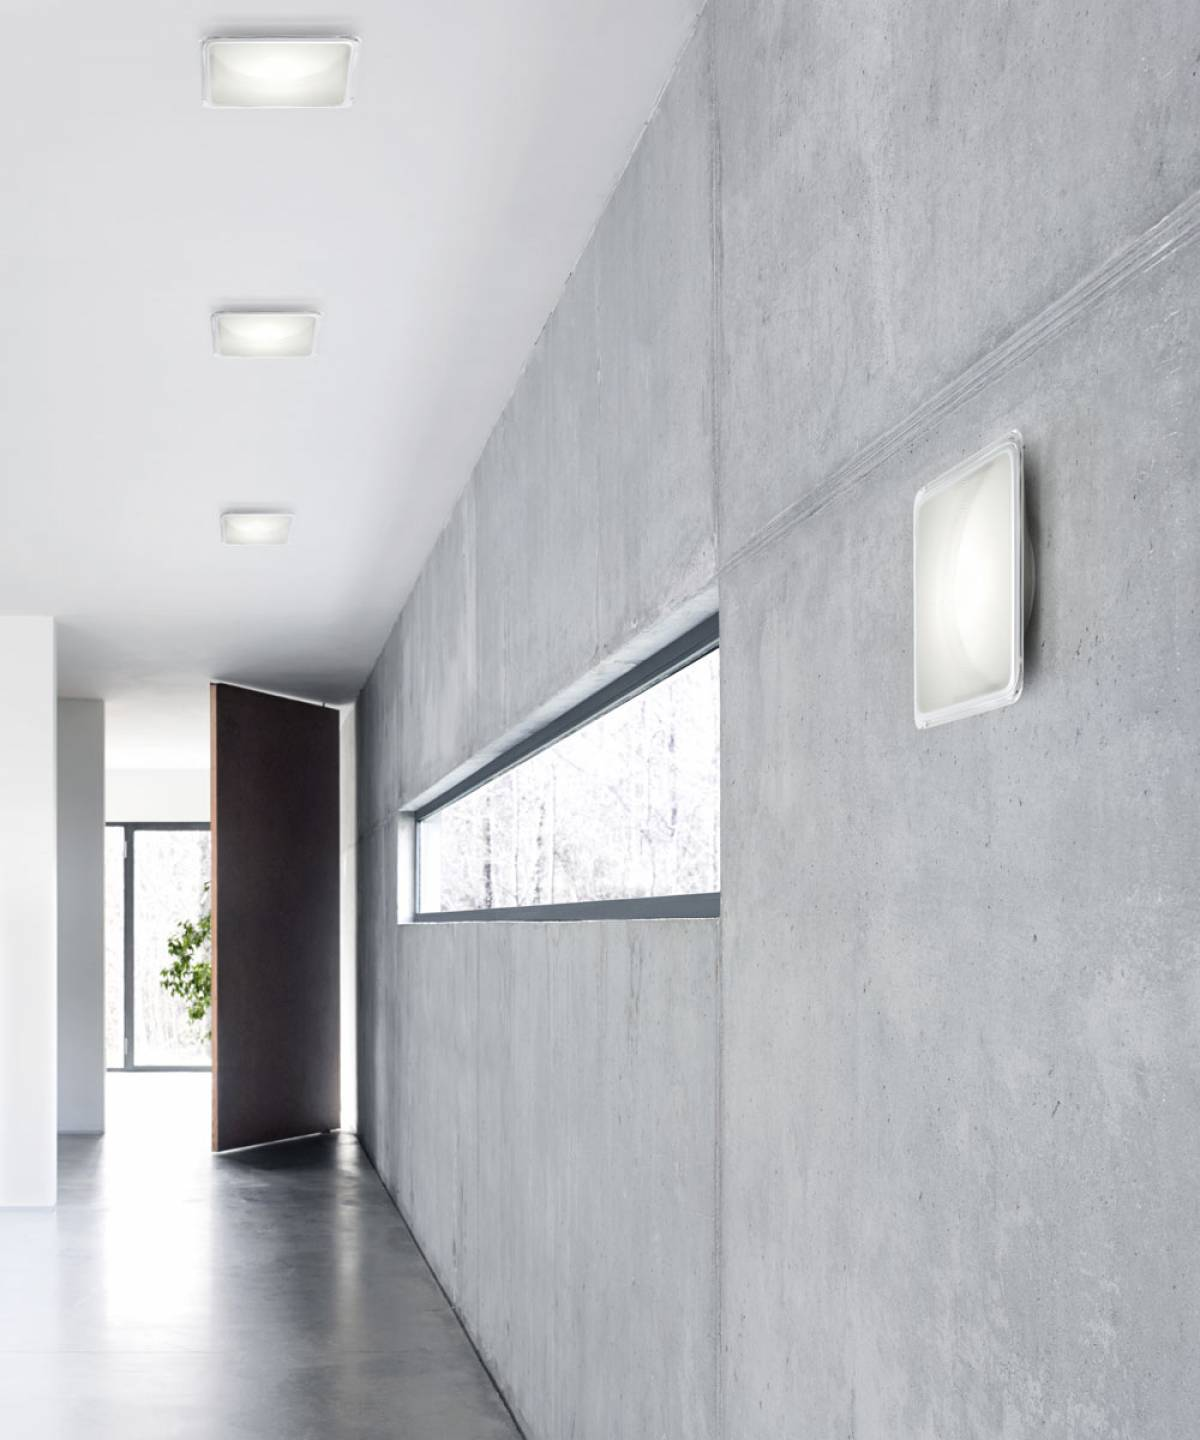 Illusion wall lamp Luceplan